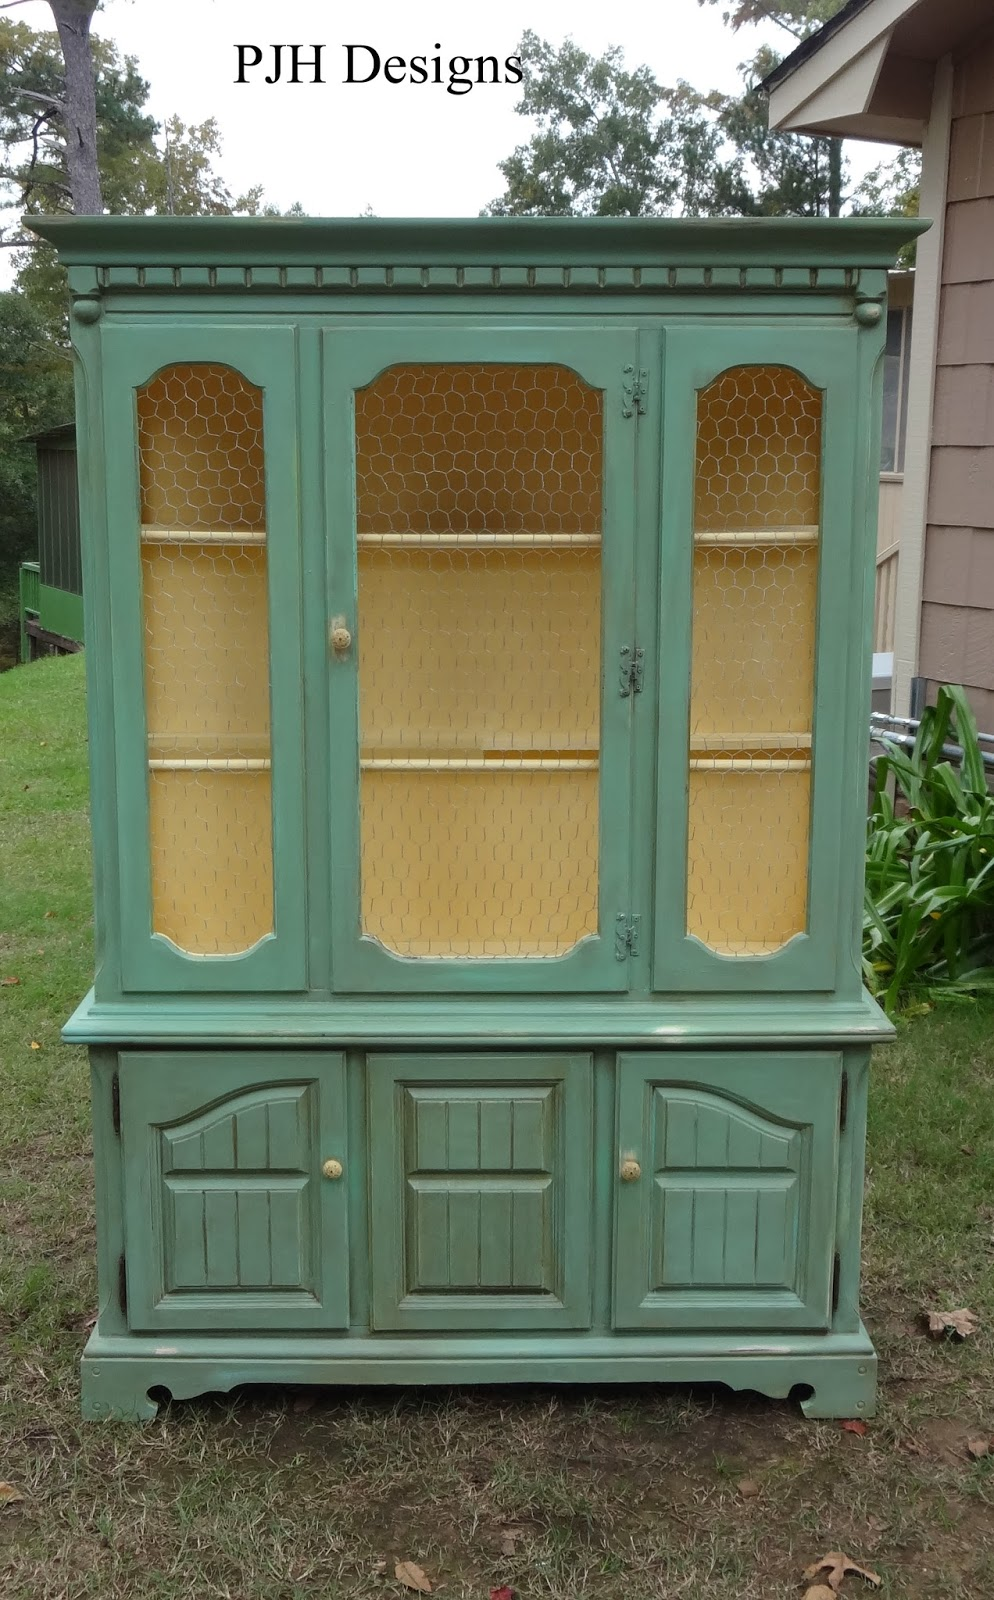 Vintage Hutch To Green Jelly Style Cabinet - PJH Designs Hand Painted Antique Furniture: Vintage Hutch To Green